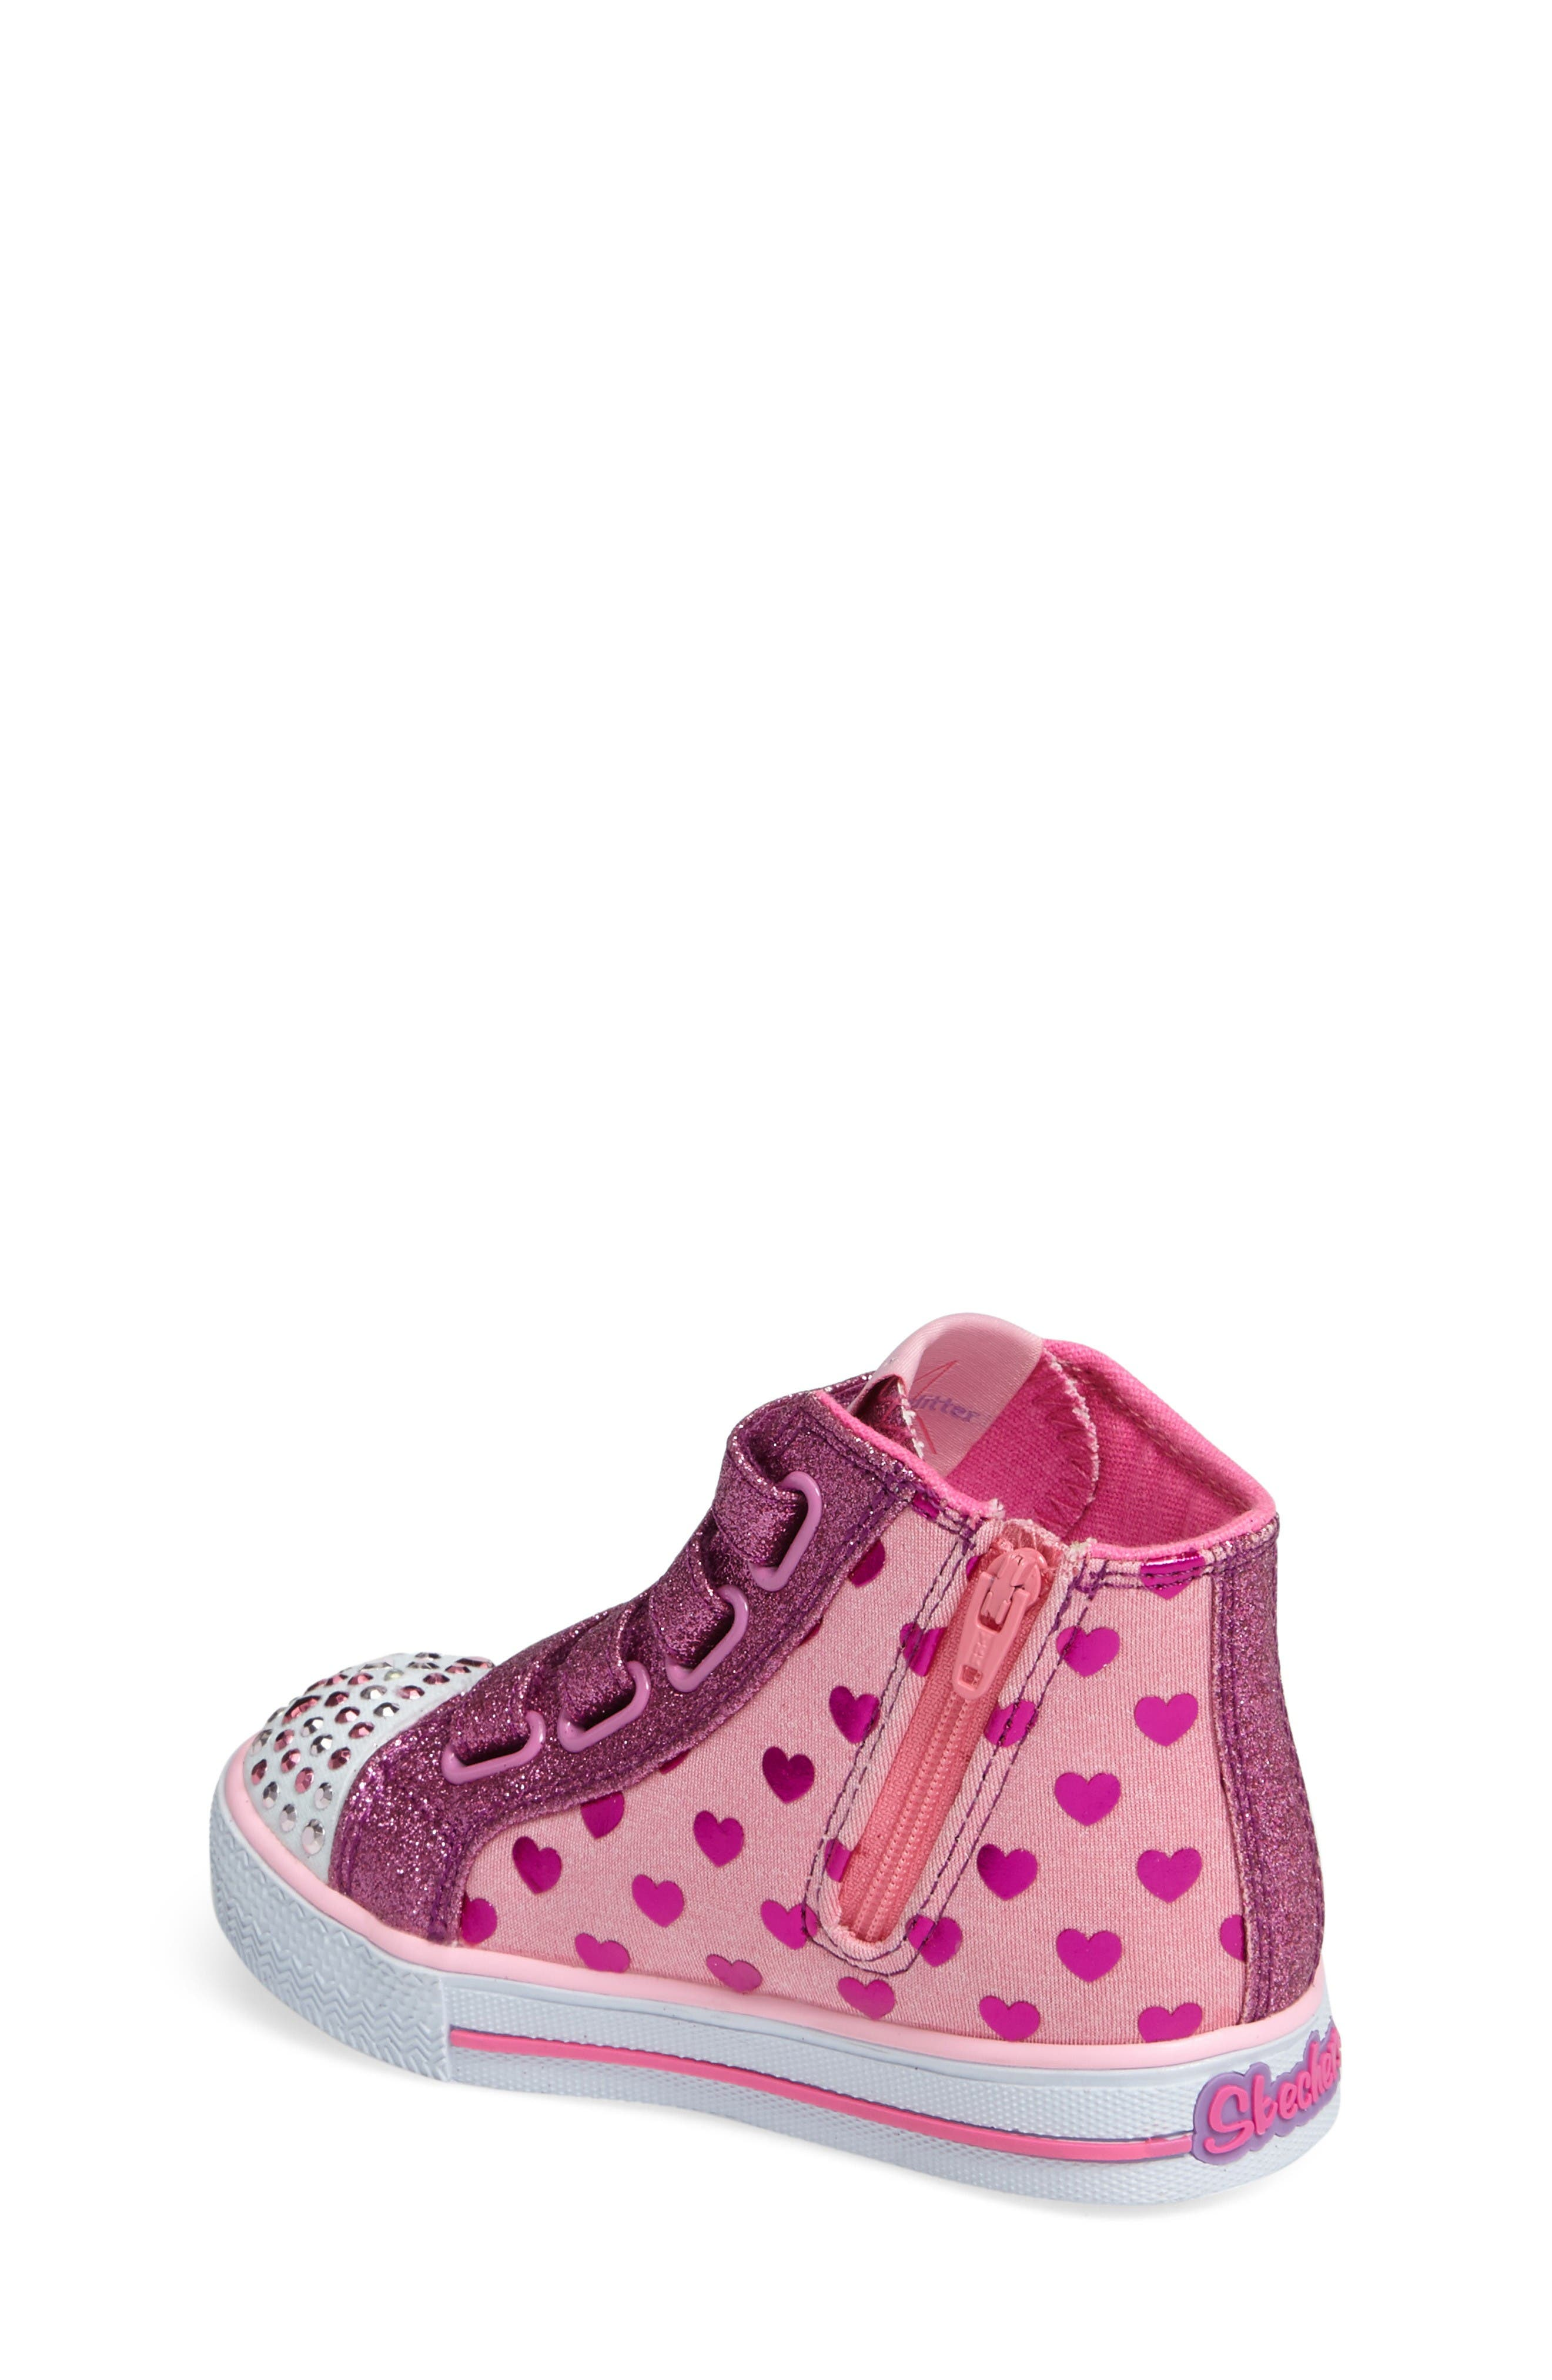 'Twinkle Toes - Shuffles' High Top Sneaker,                             Alternate thumbnail 2, color,                             Pink/ Hot Pink